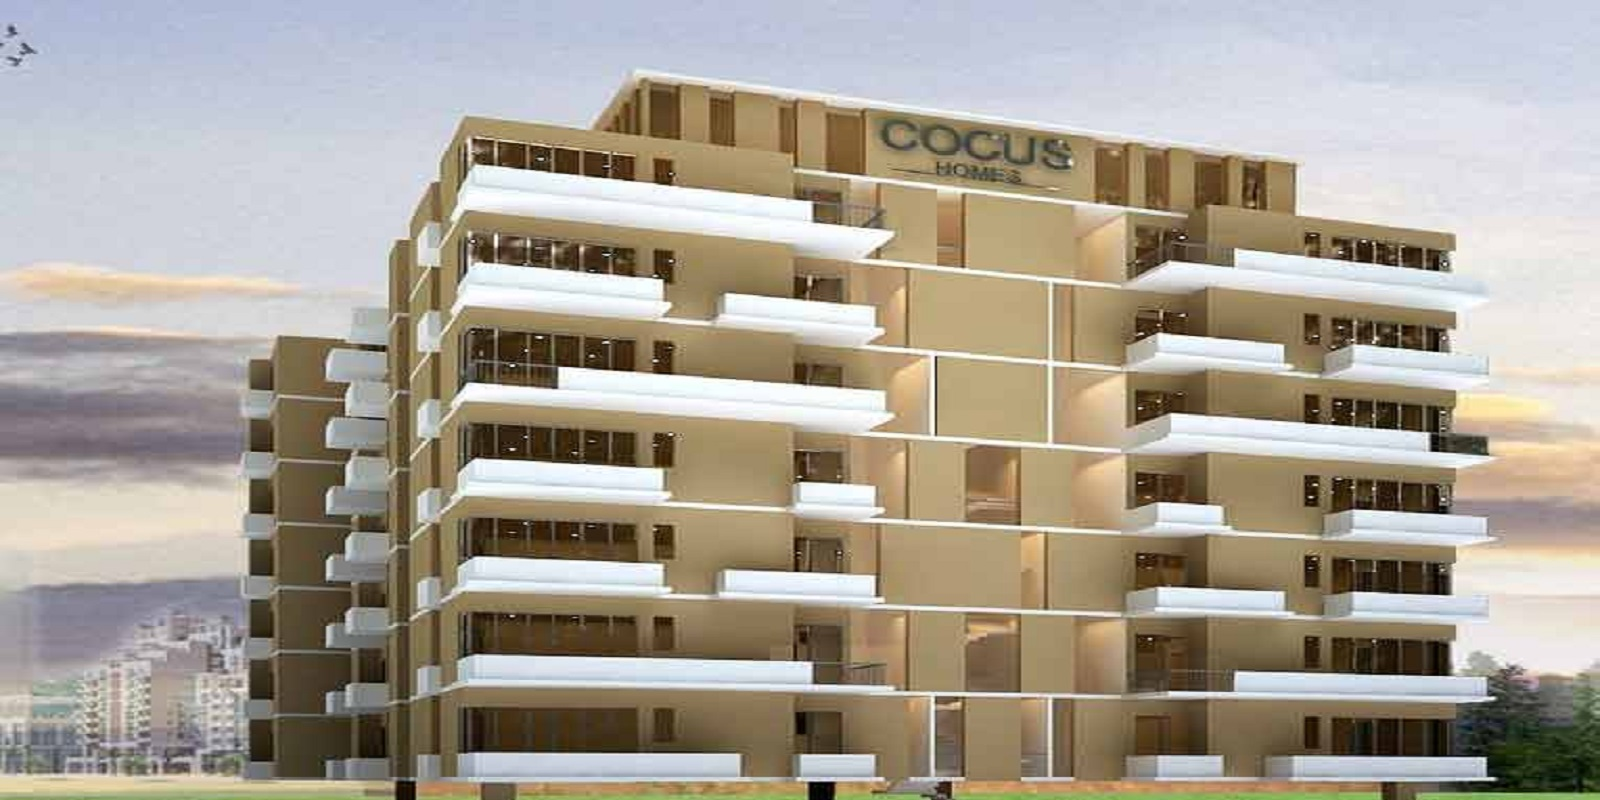 krishna cocus homes project project large image1